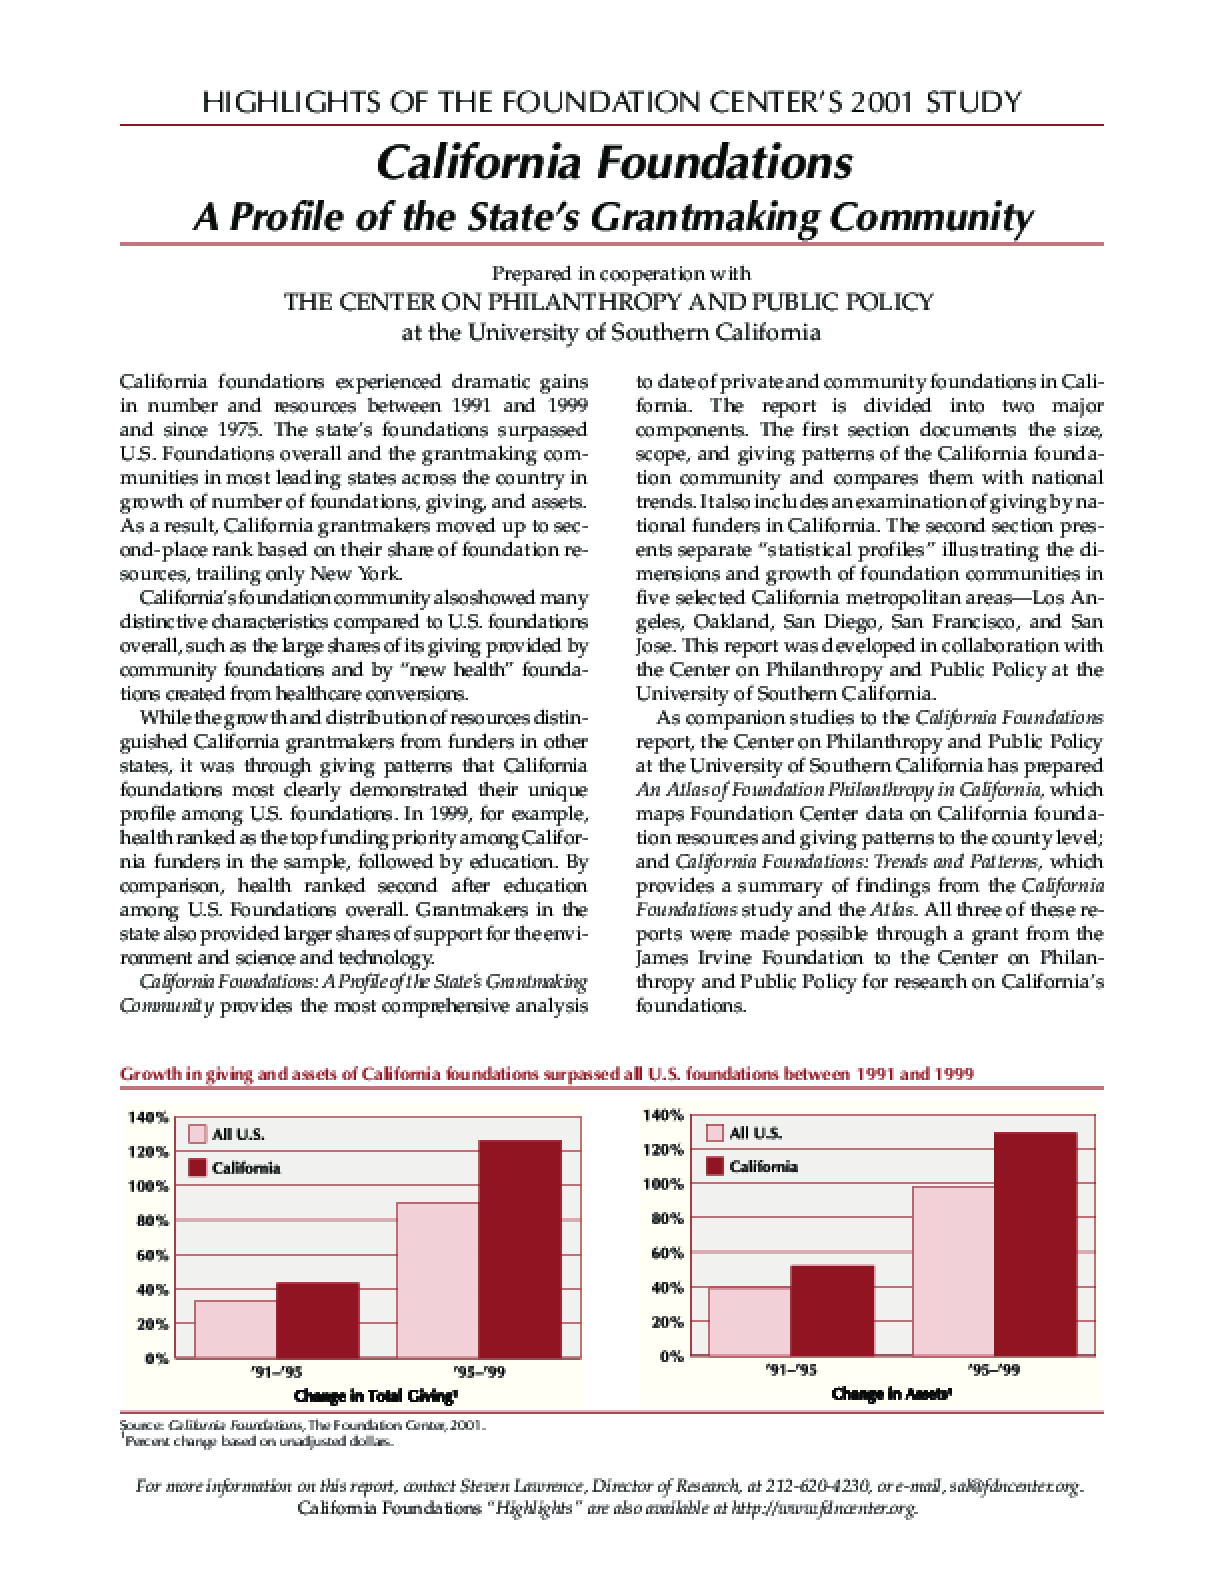 Highlights of the Foundation Center's 2001 Study: California Foundations - A Profile of the State's Grantmaking Community